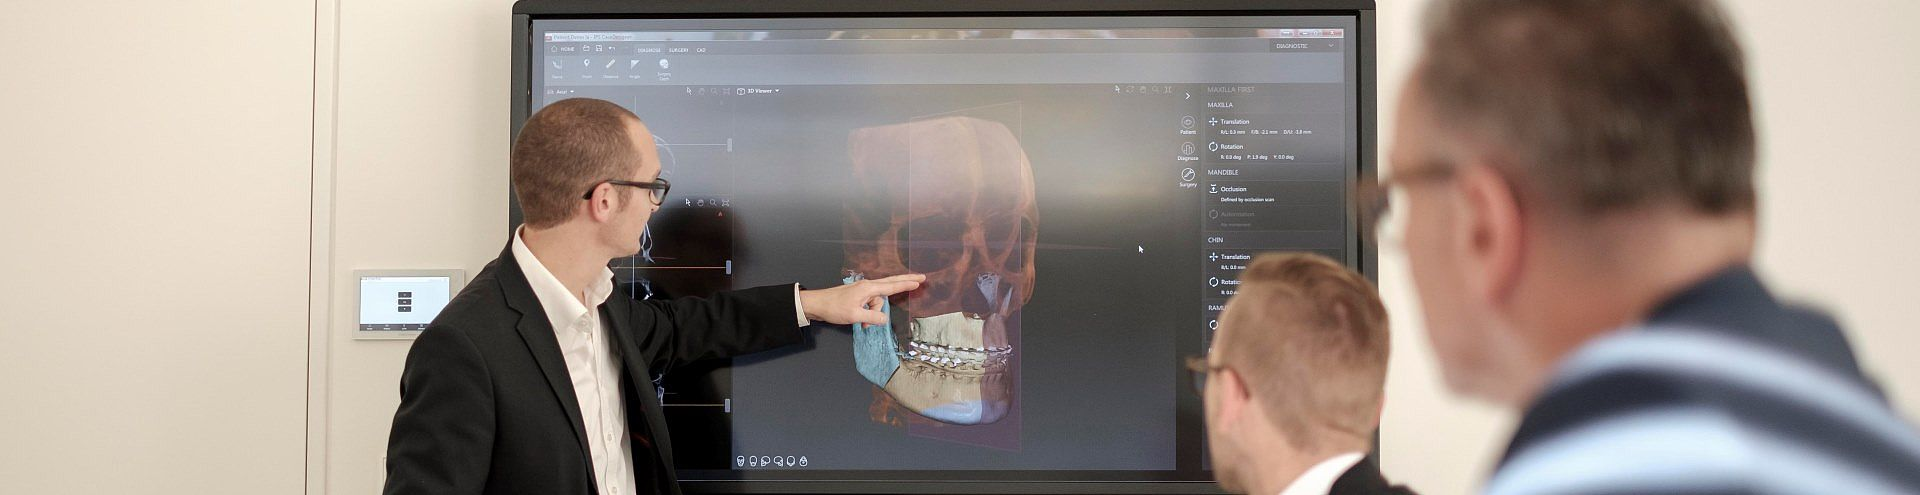 L1® MI Orthognathics – Hands-On Training Courses